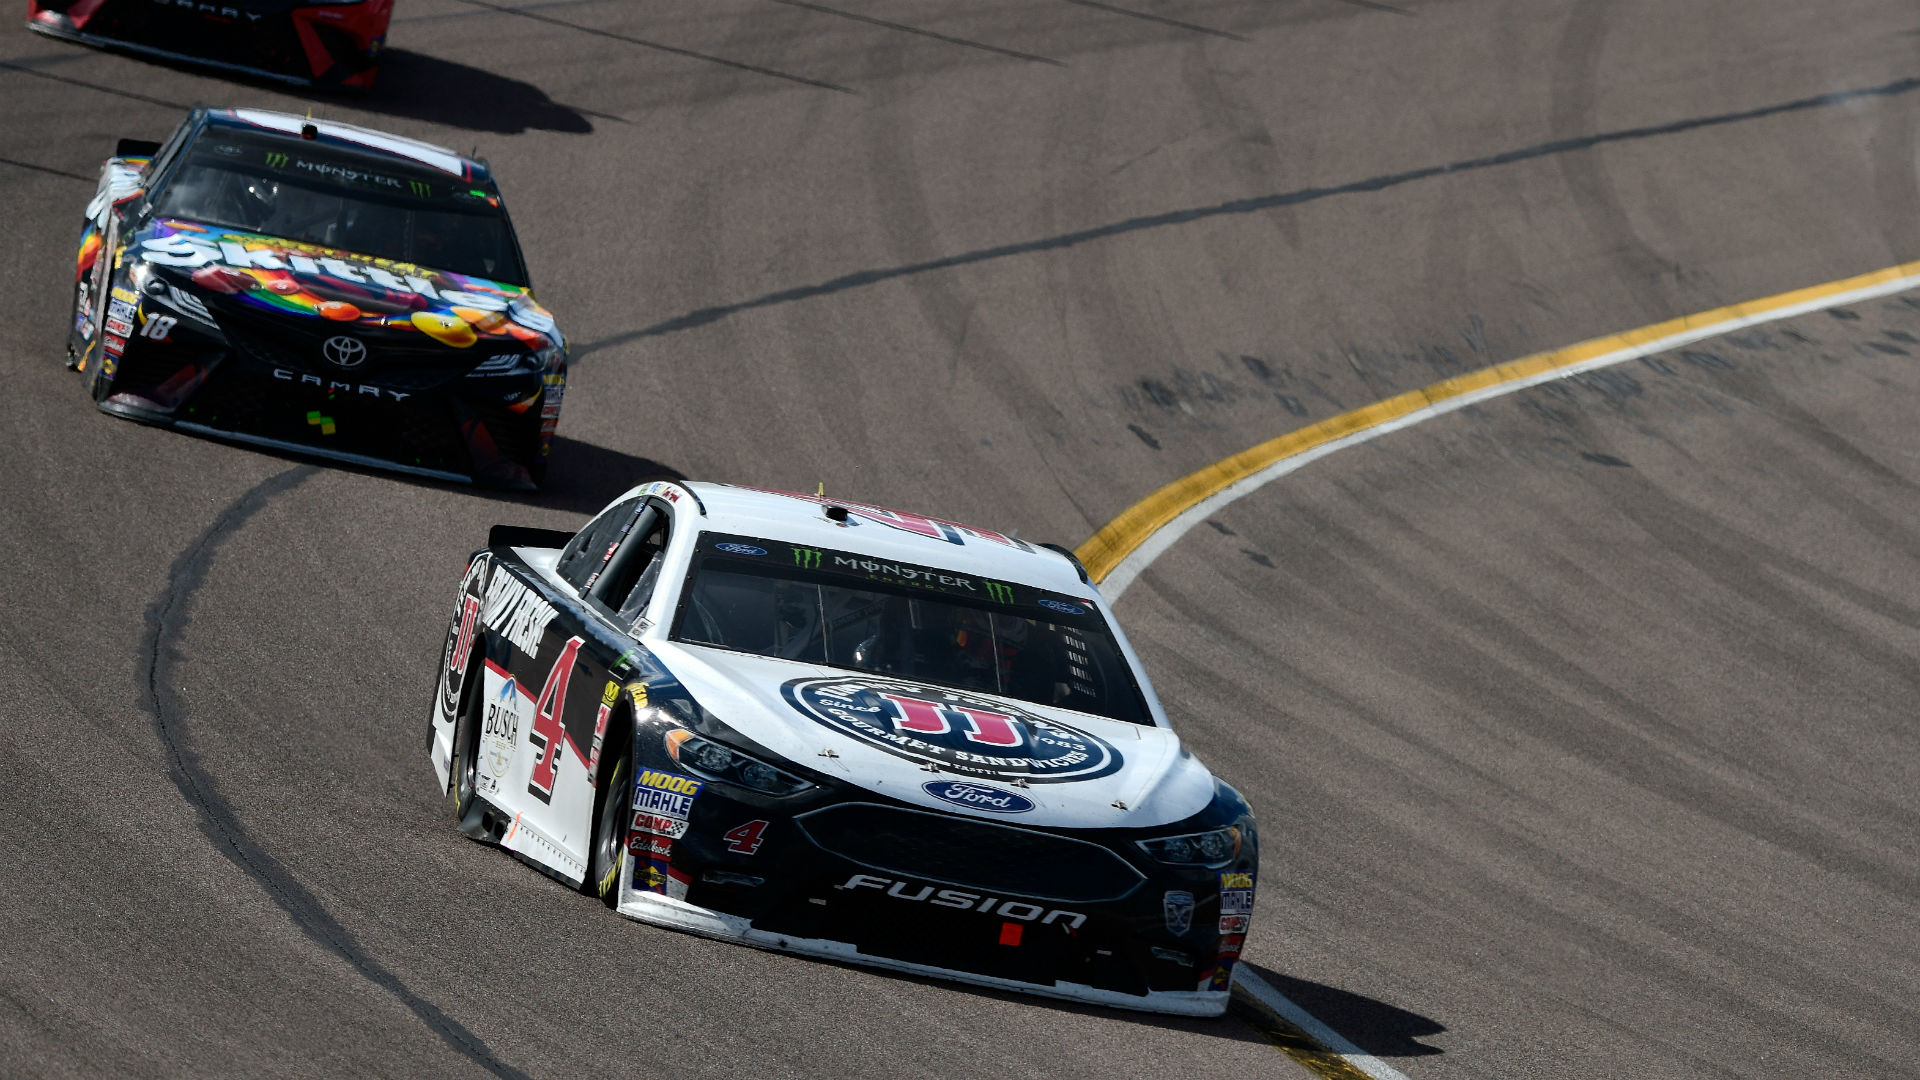 NASCAR at Charlotte: TV schedule, standings, qualifying drivers for Coca-Cola 600